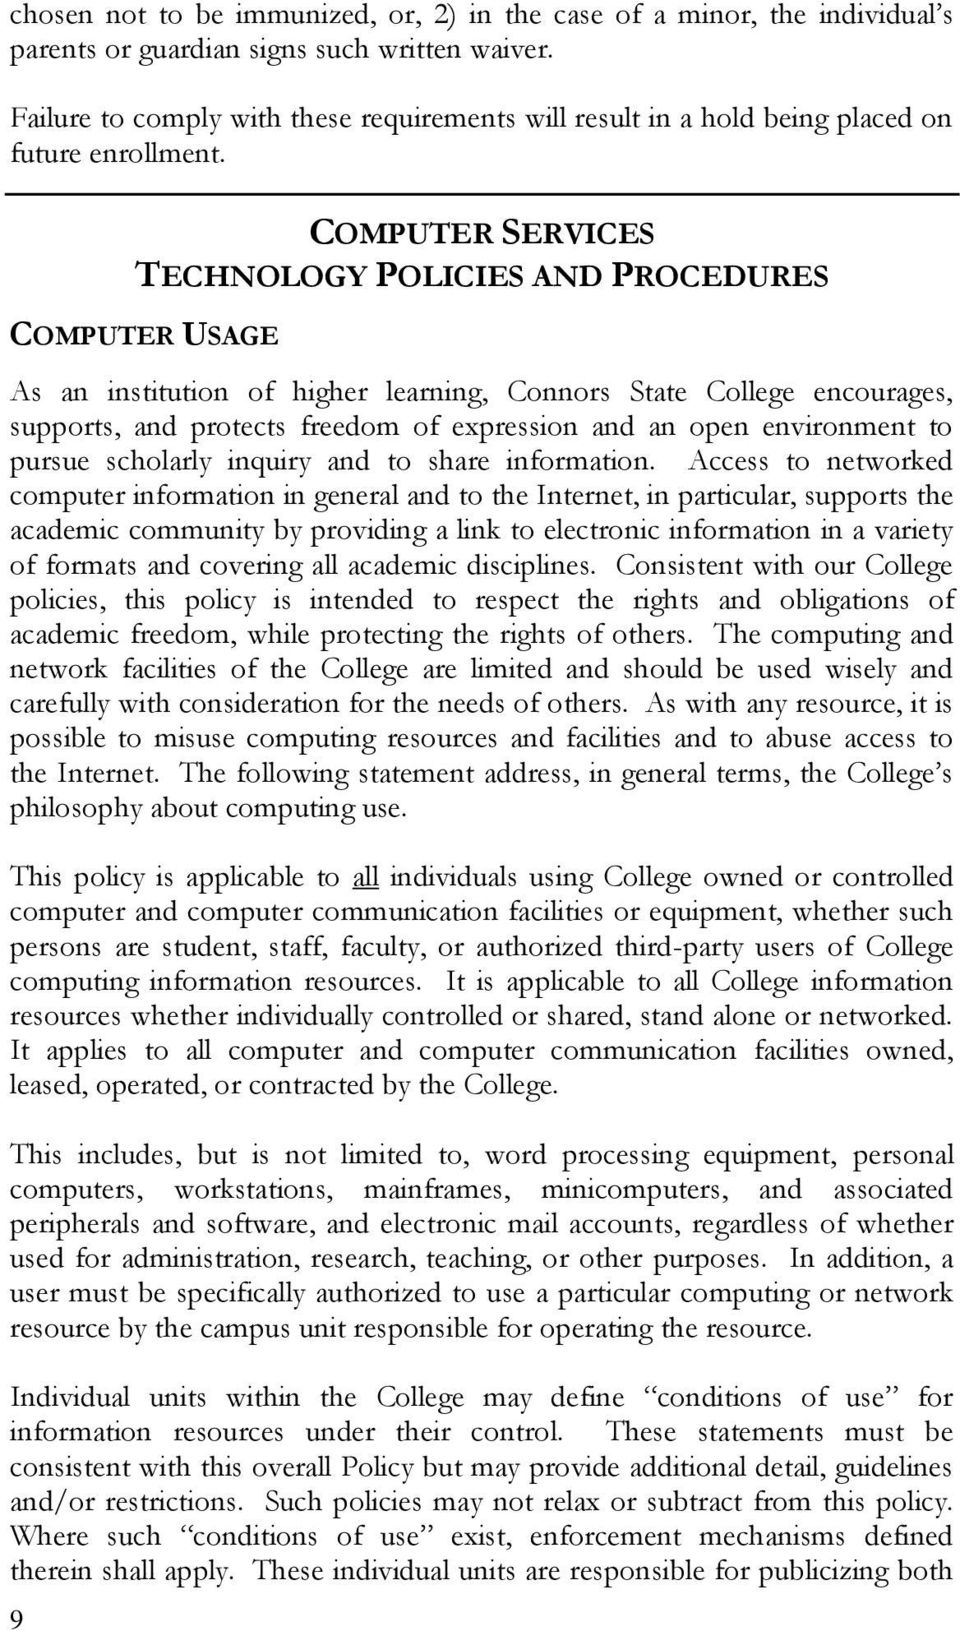 9 COMPUTER SERVICES TECHNOLOGY POLICIES AND PROCEDURES COMPUTER USAGE As an institution of higher learning, Connors State College encourages, supports, and protects freedom of expression and an open